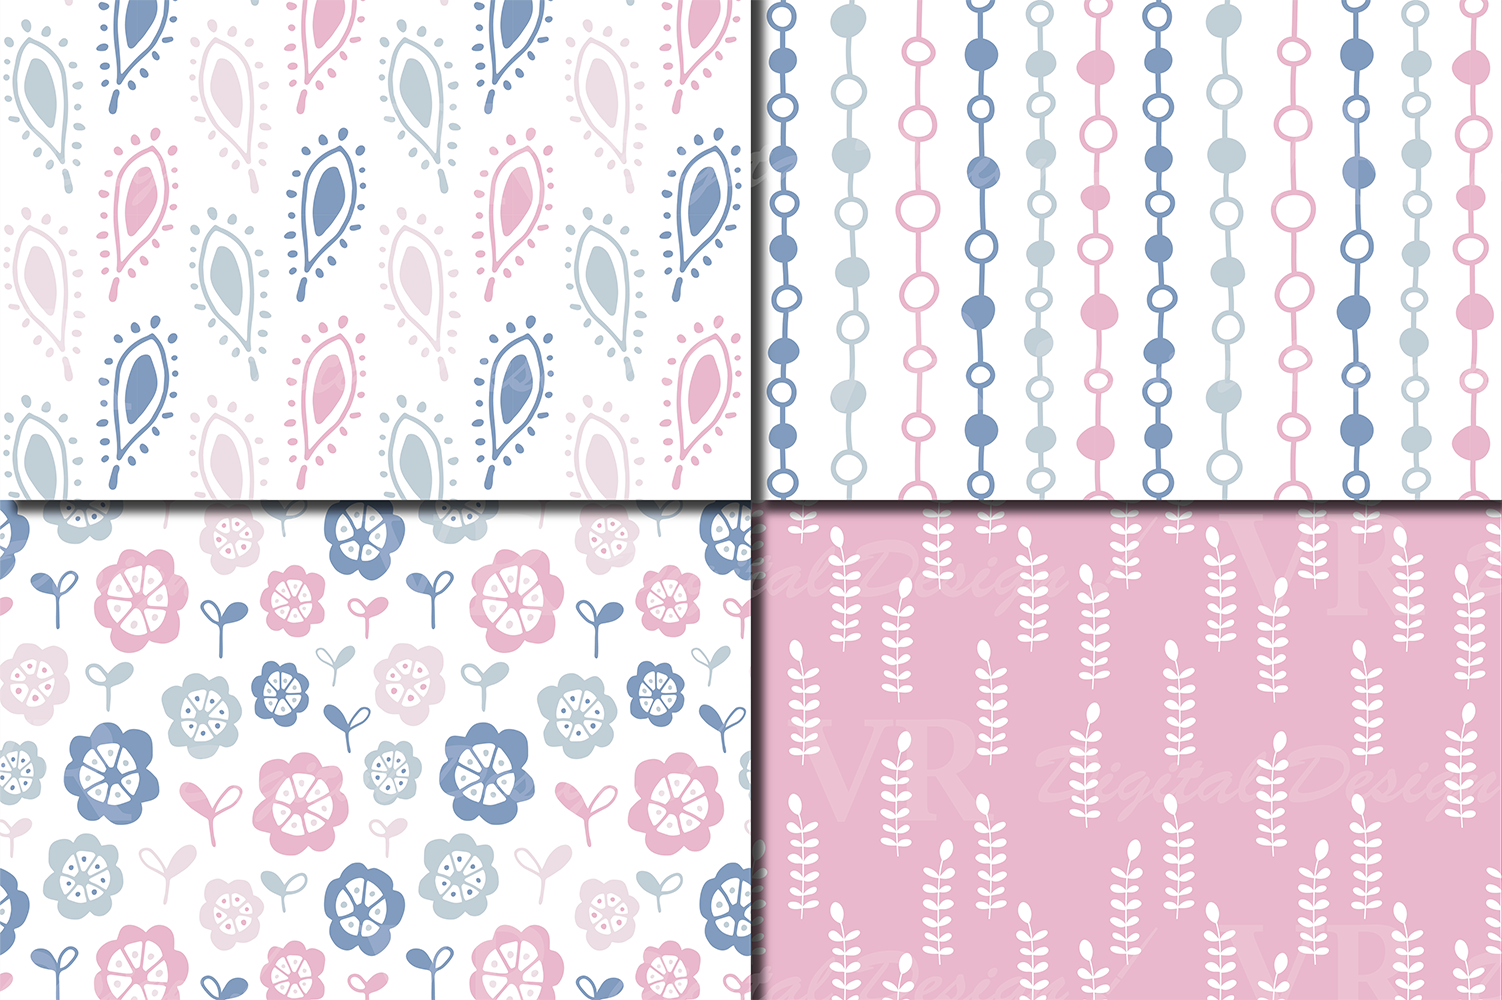 Romantic Blue Pink Floral Seamless Digital Paper Patterns